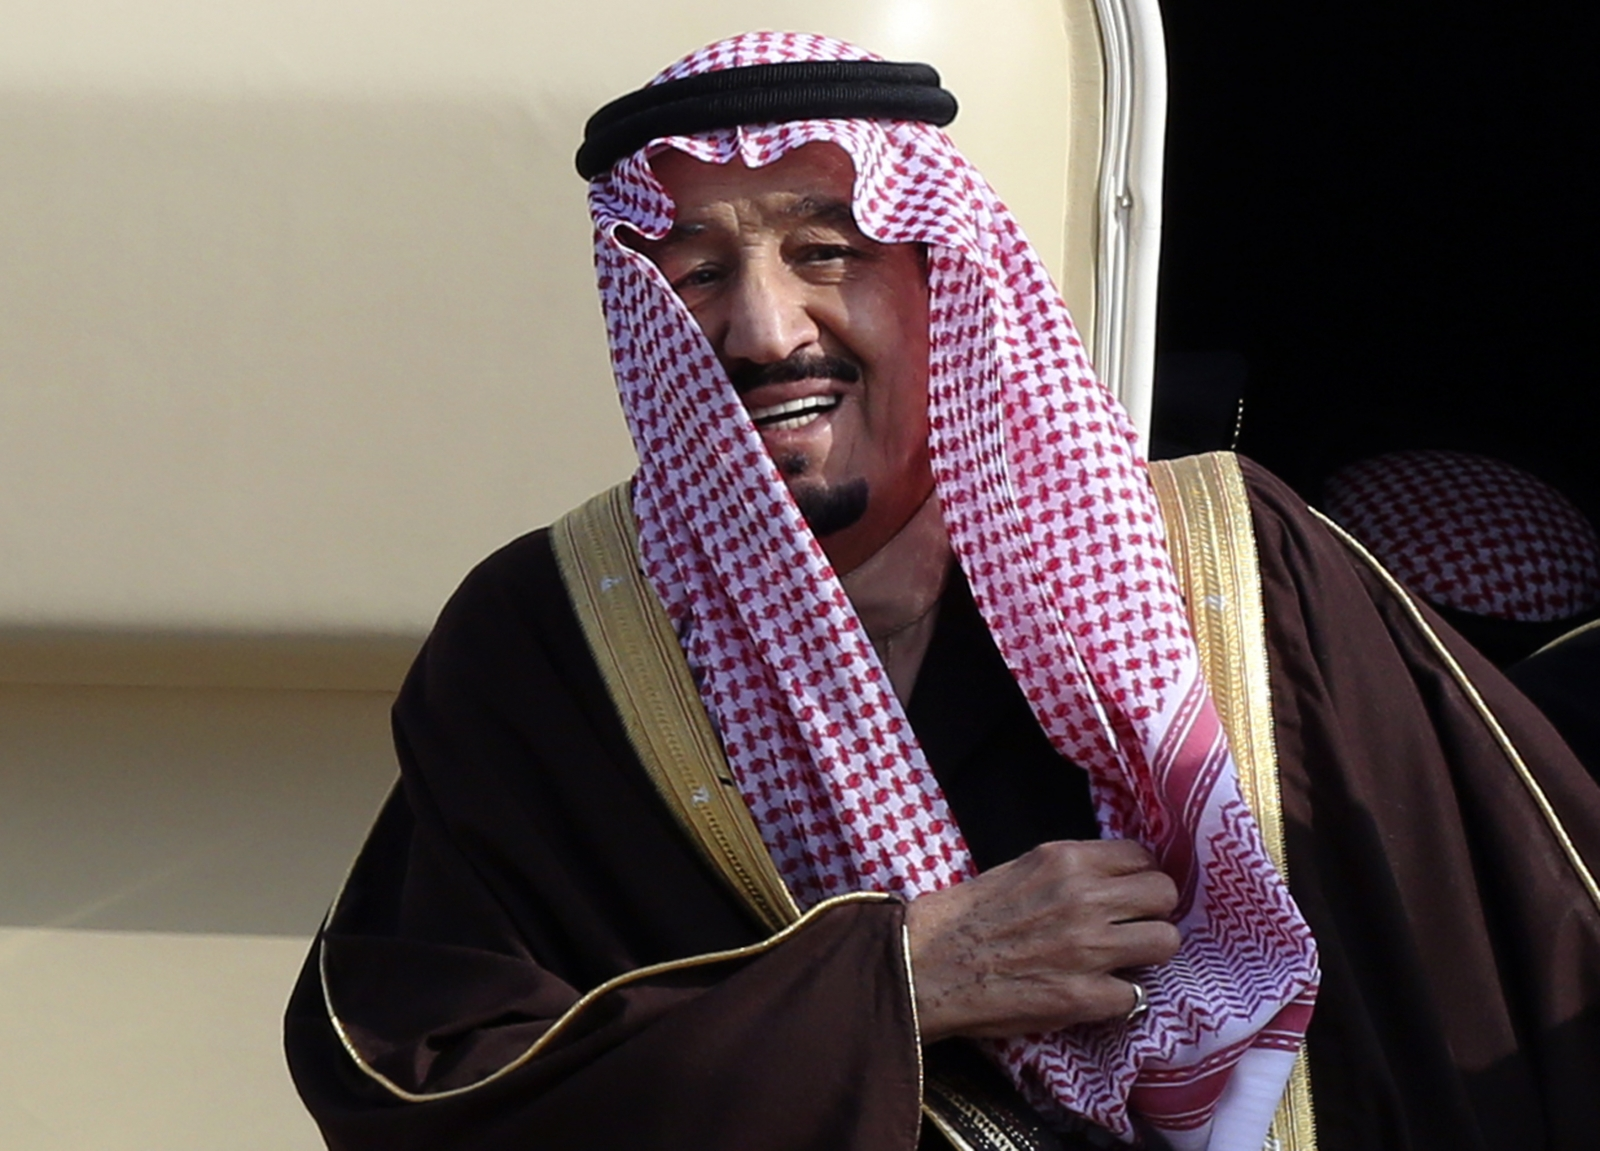 Saudi King passes away and tributes pour in